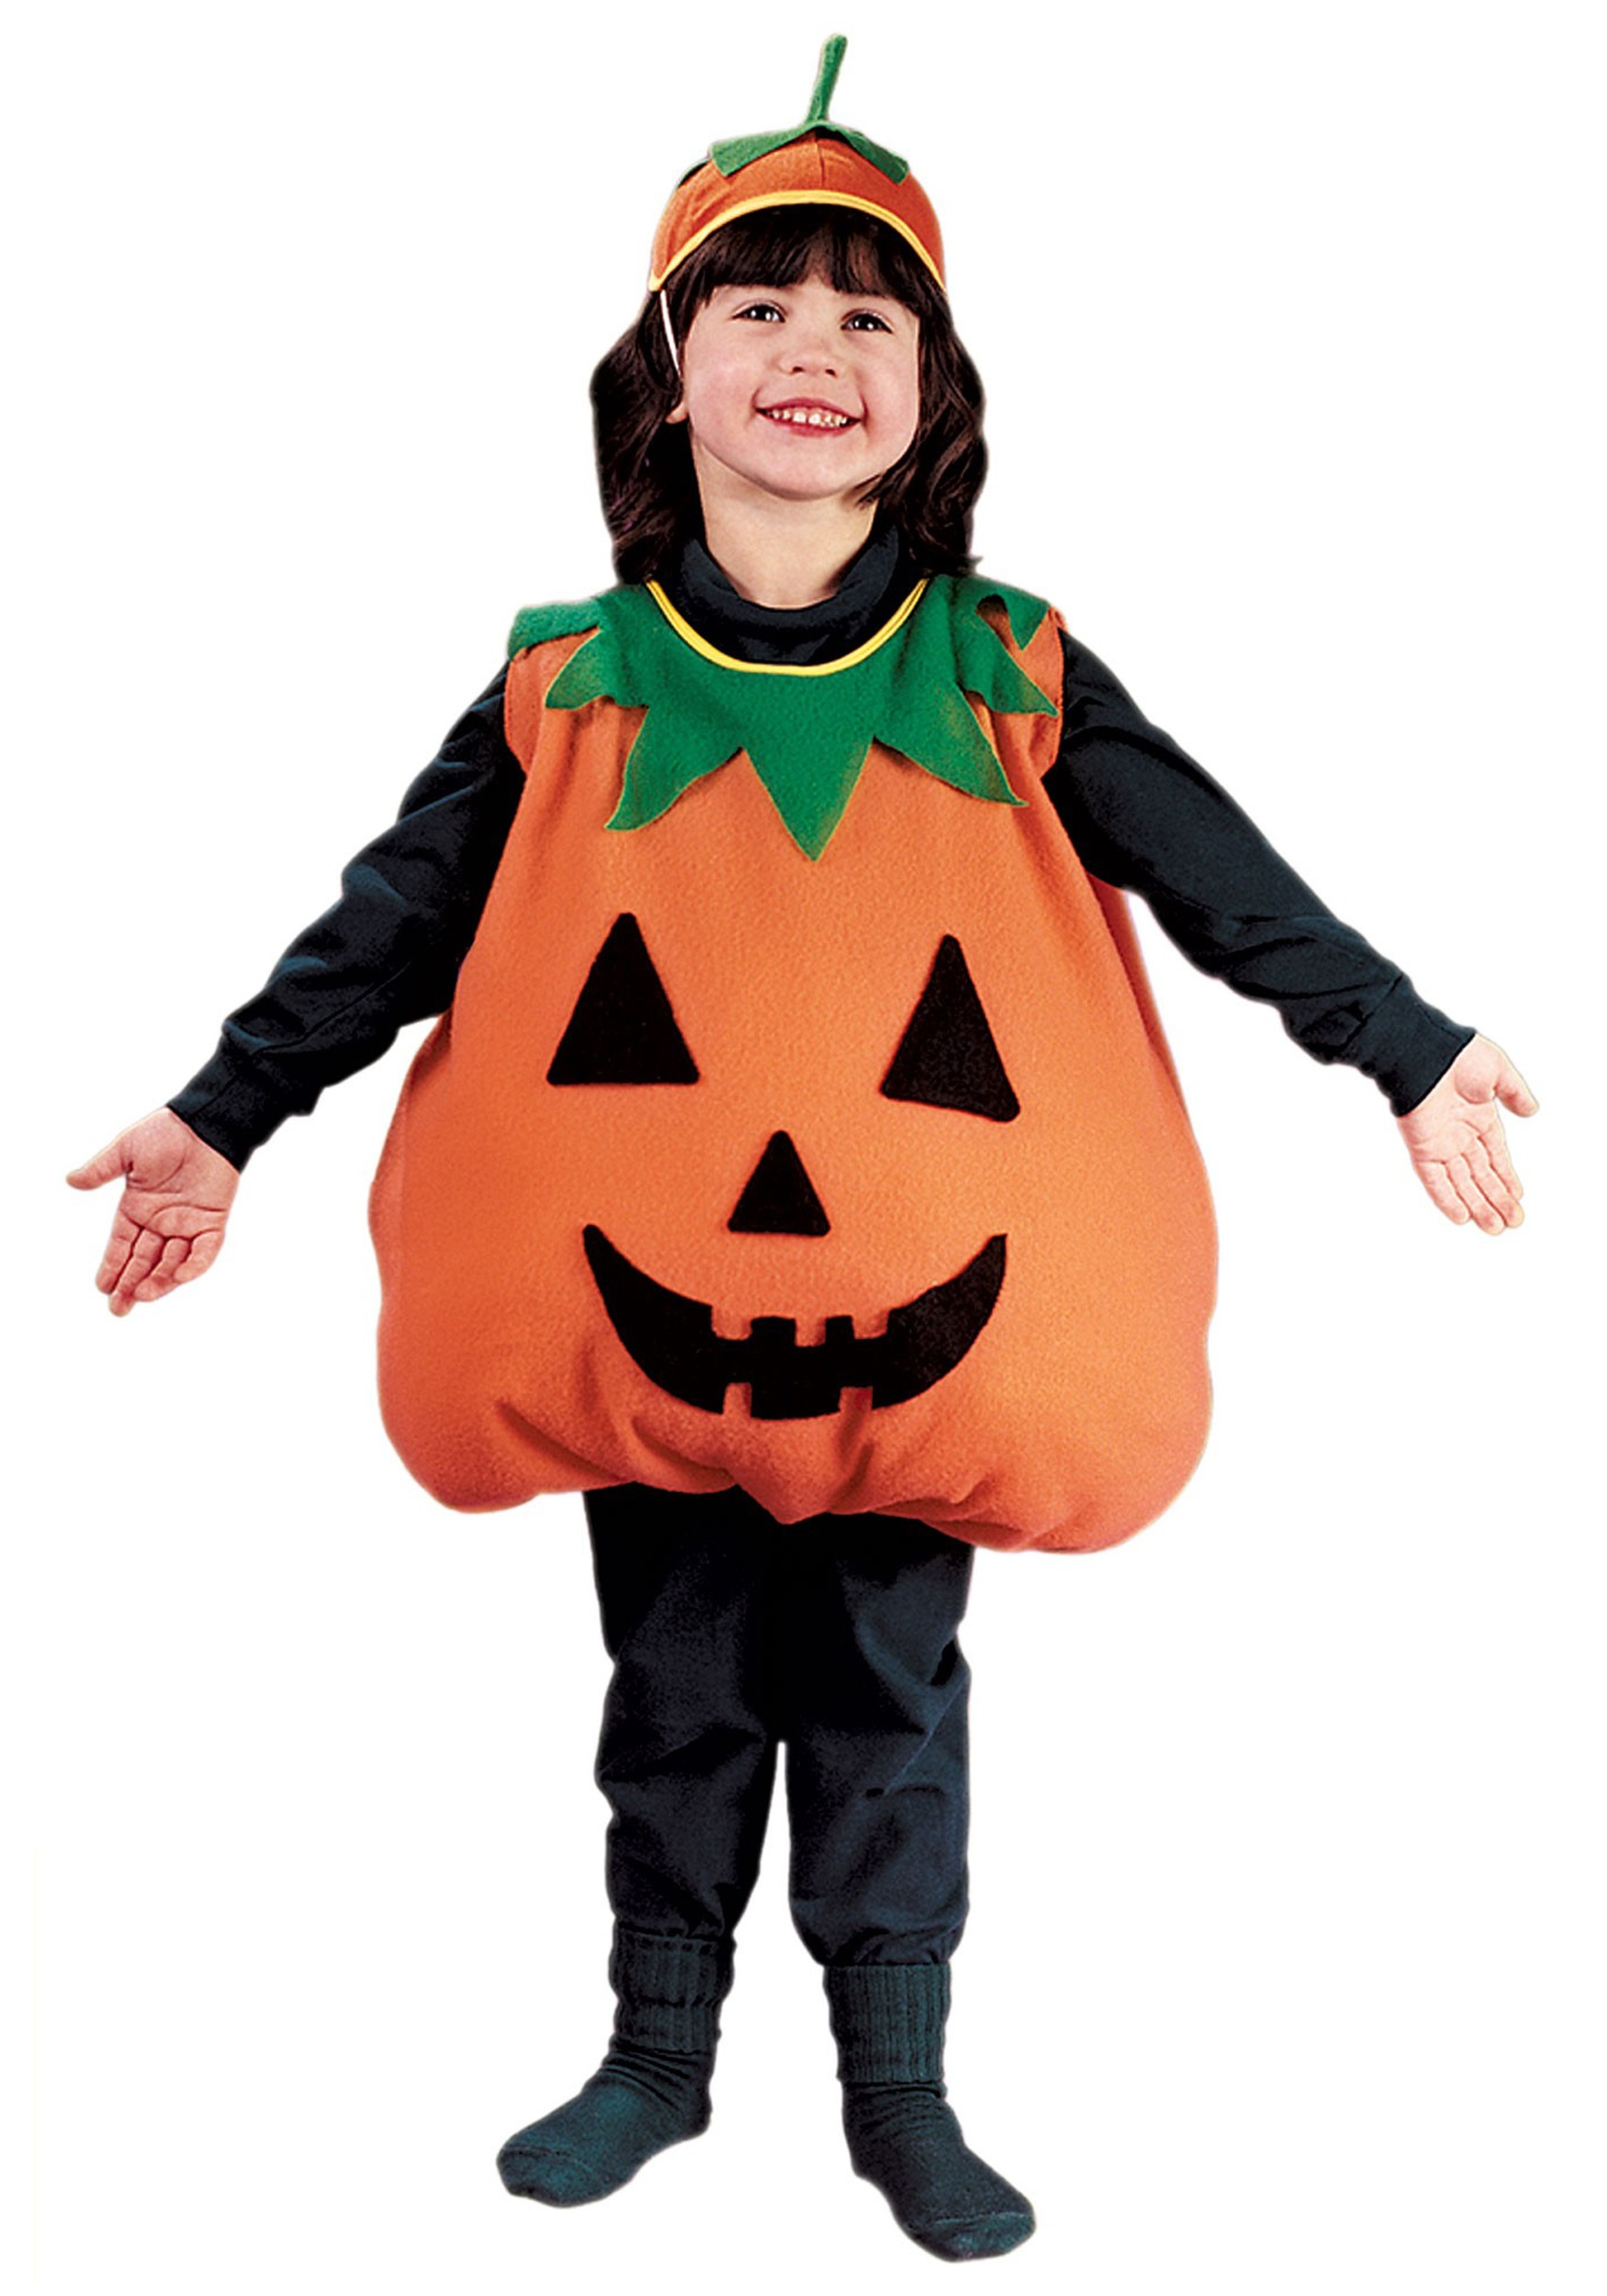 Child Pumpkin Costume  sc 1 st  Halloween Costumes & Food Costumes - Adult Kids Food and Drink Halloween Costume Ideas